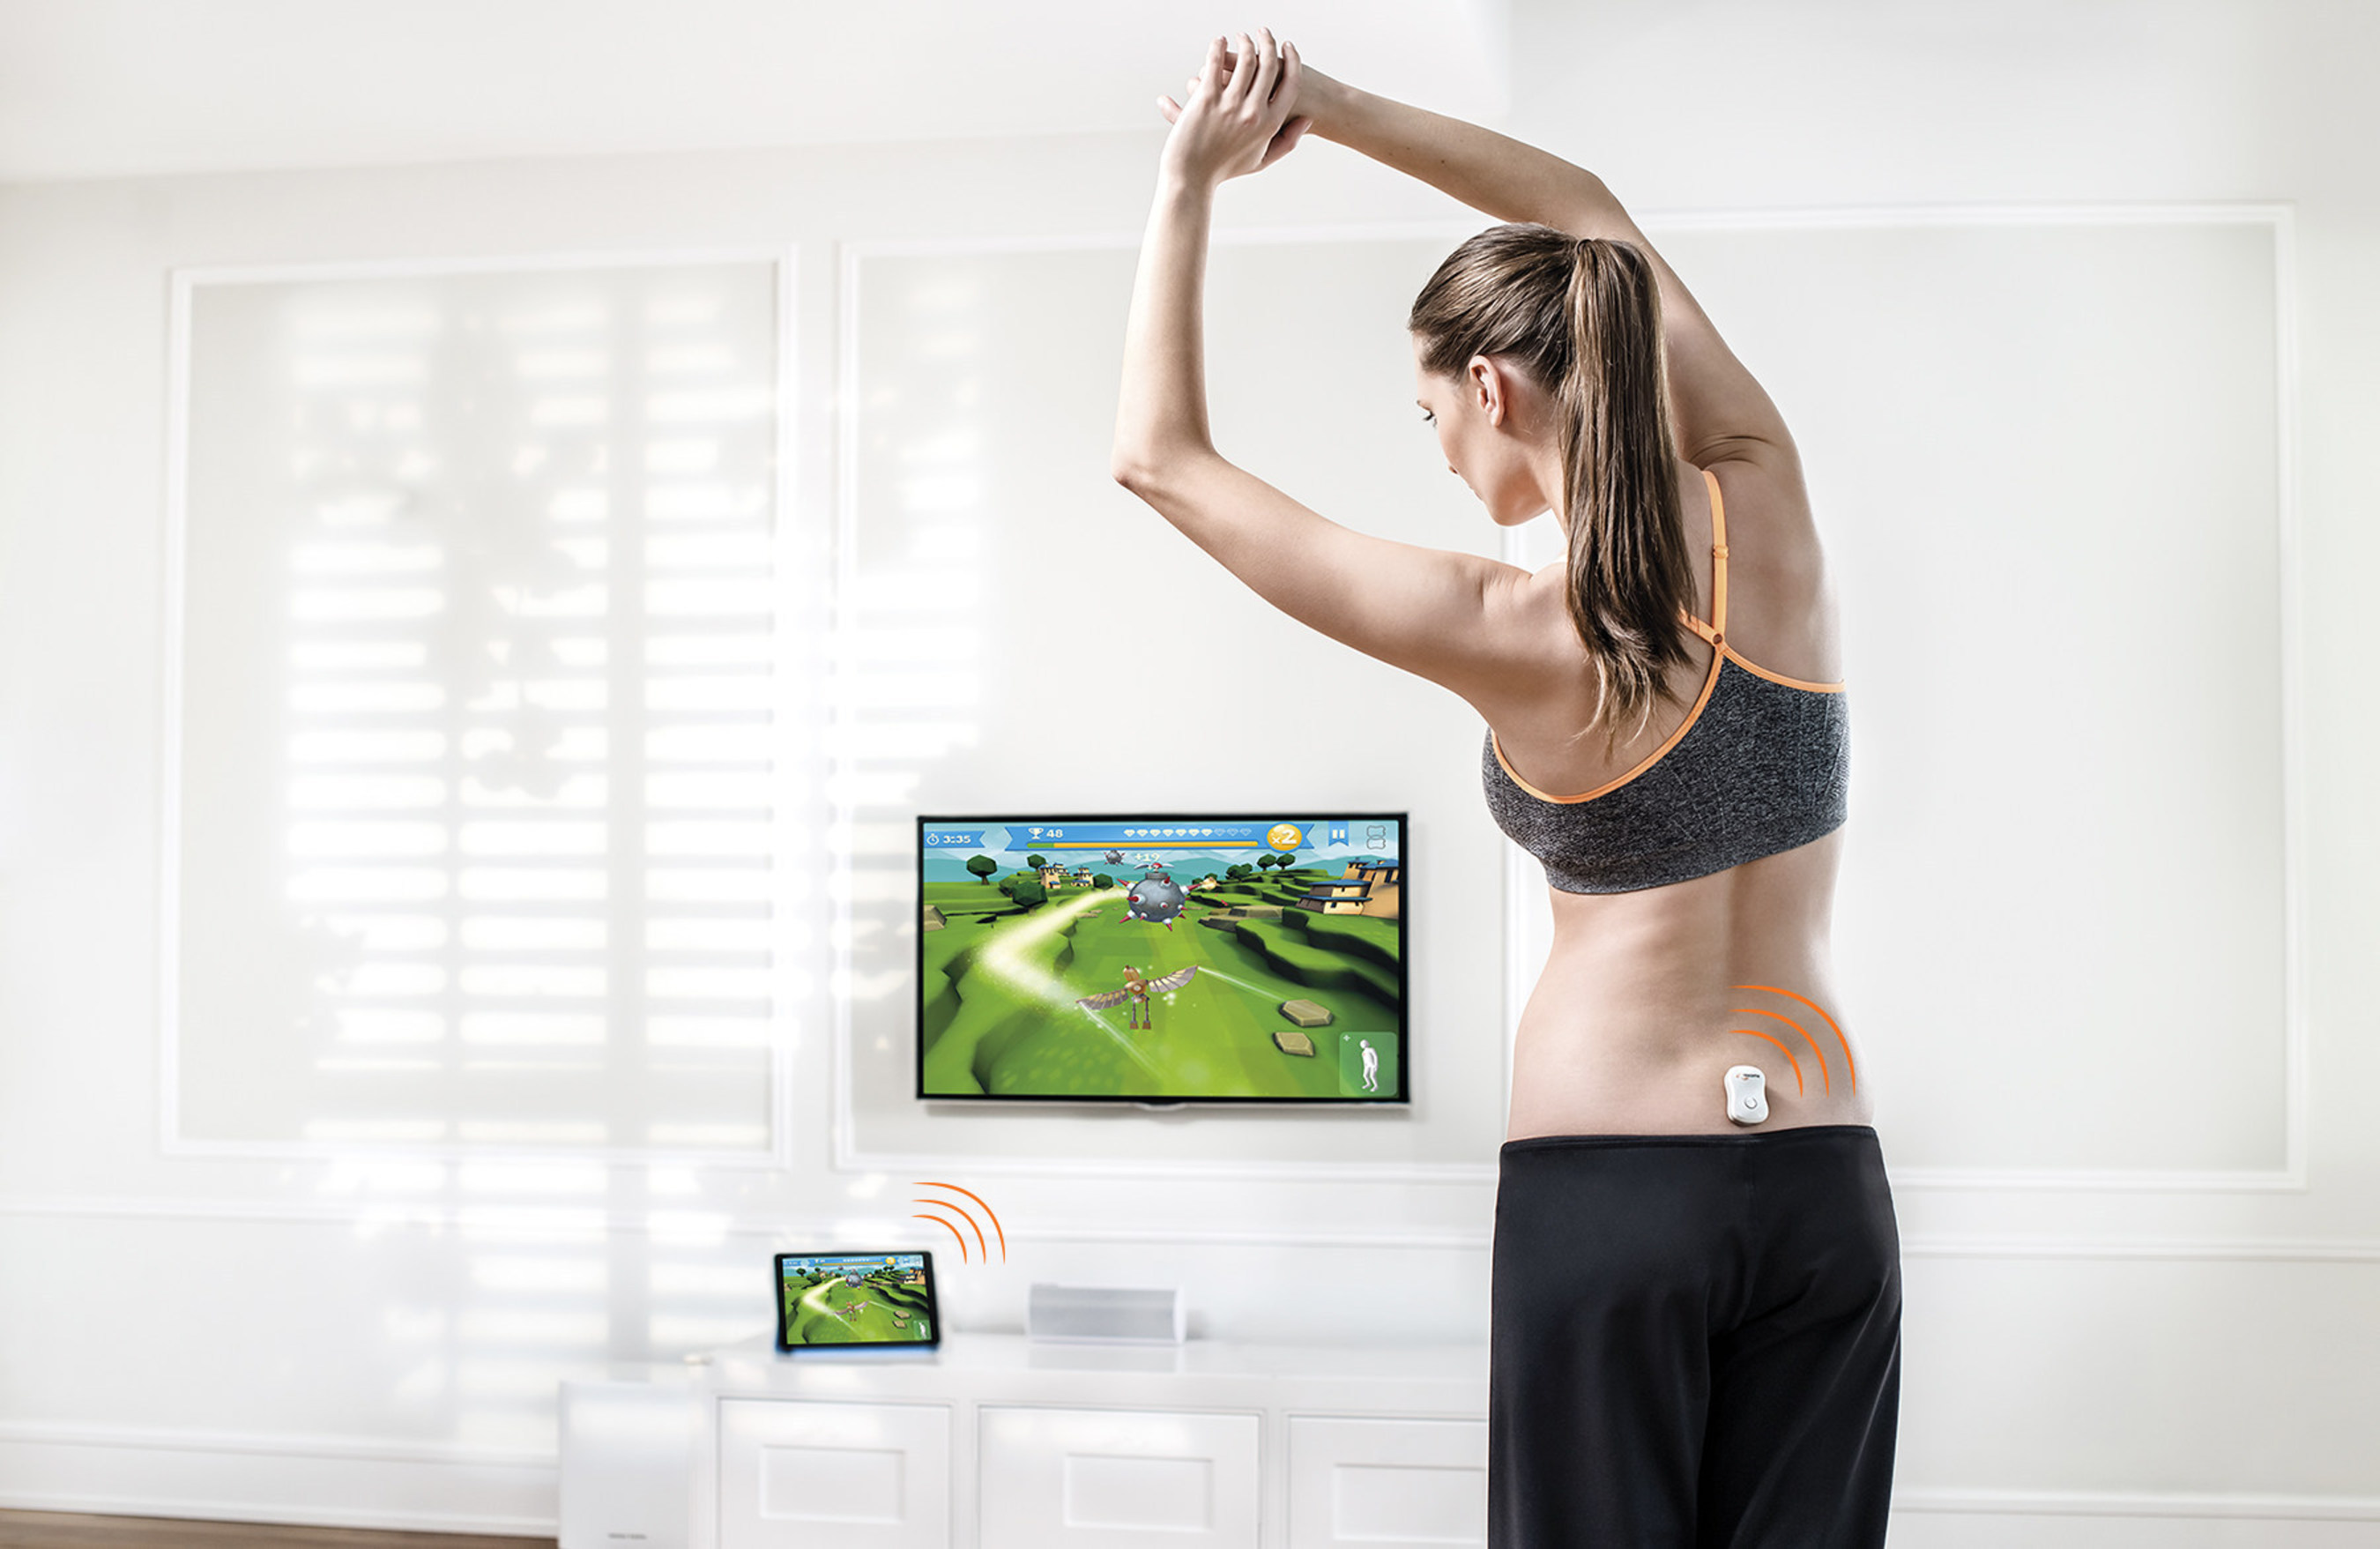 Valedo is the first wearable medical device for the low back that combines physical sensors with sophisticated, yet intuitive software to motivate and guide users through fun and interactive exercises.